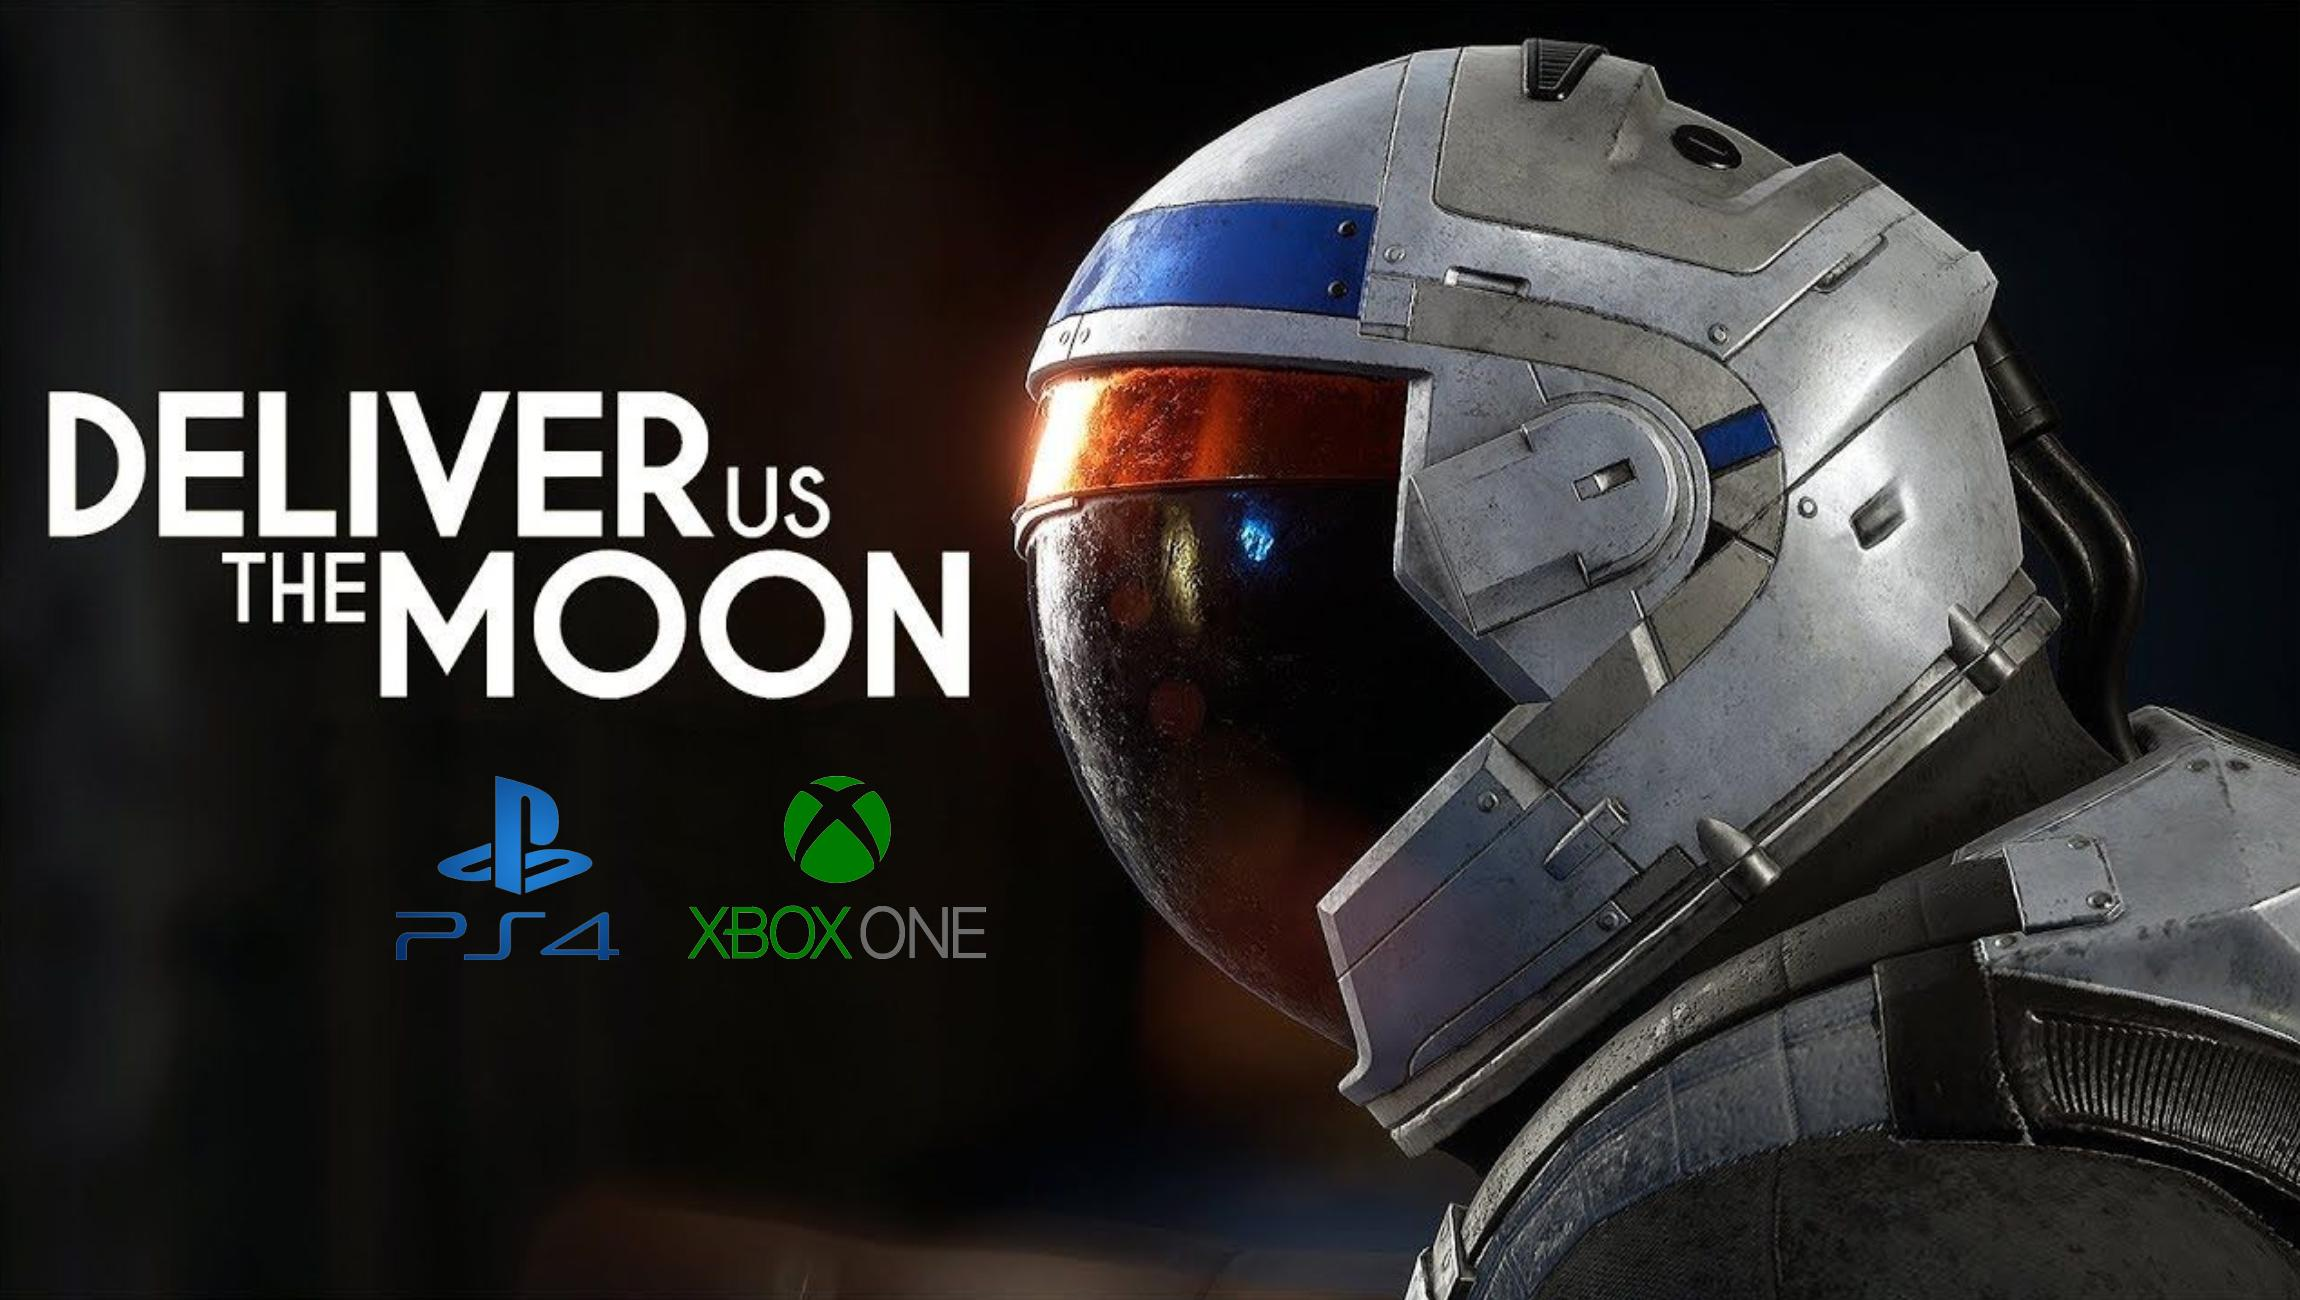 Deliver us the Moon PS4 Xbox One